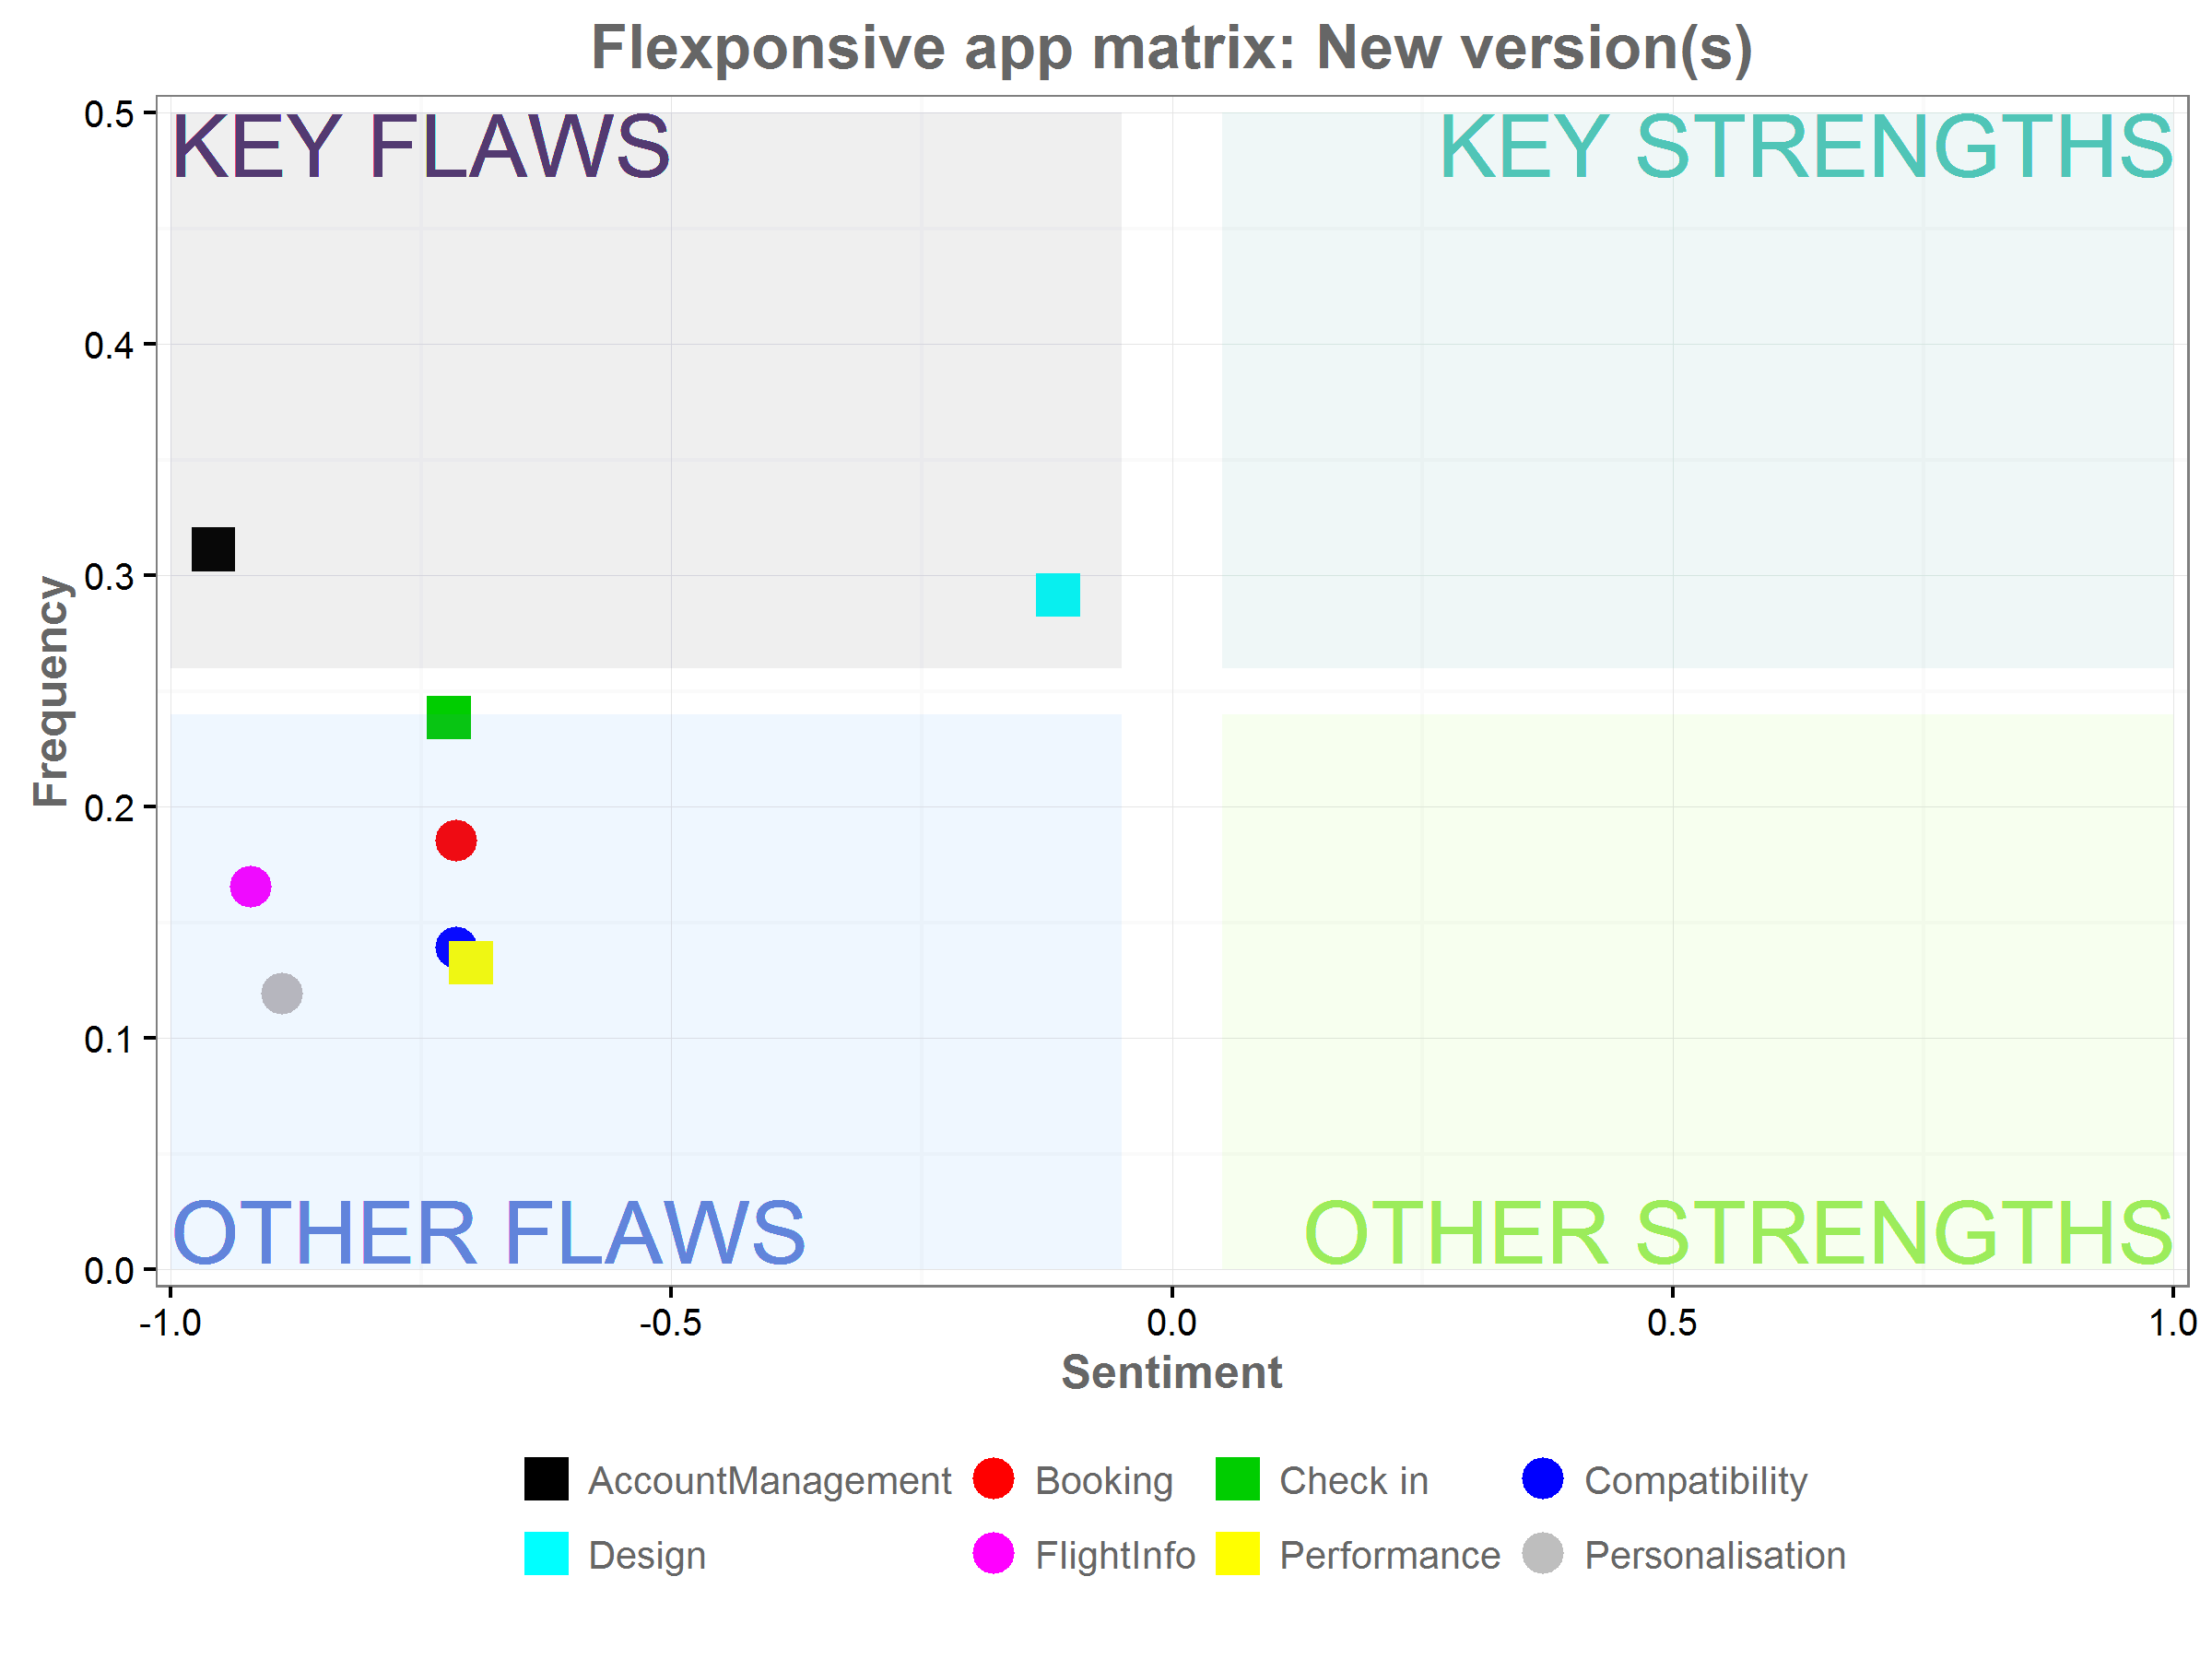 A graph with 4 sections, showing the flaws and strengths of the new app.